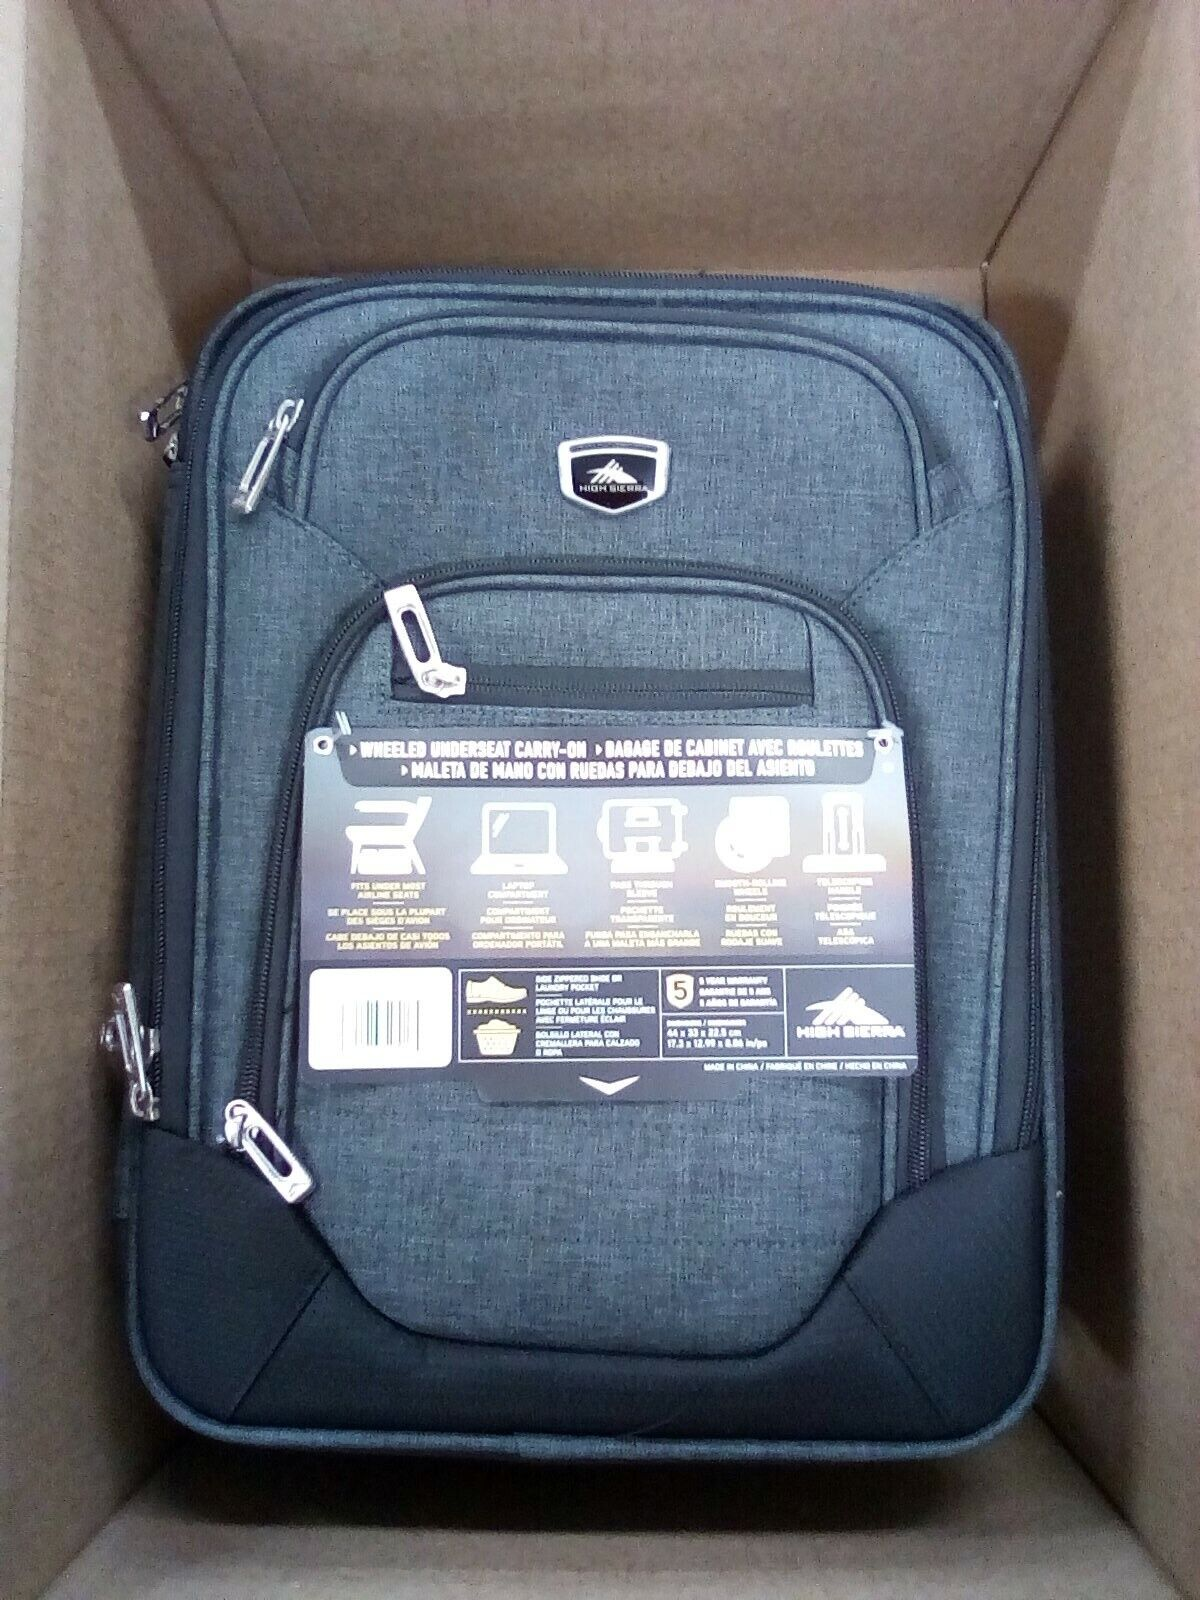 Endeavor Wheeled Underseat Carry On Laptop Bag Travelon Lugg